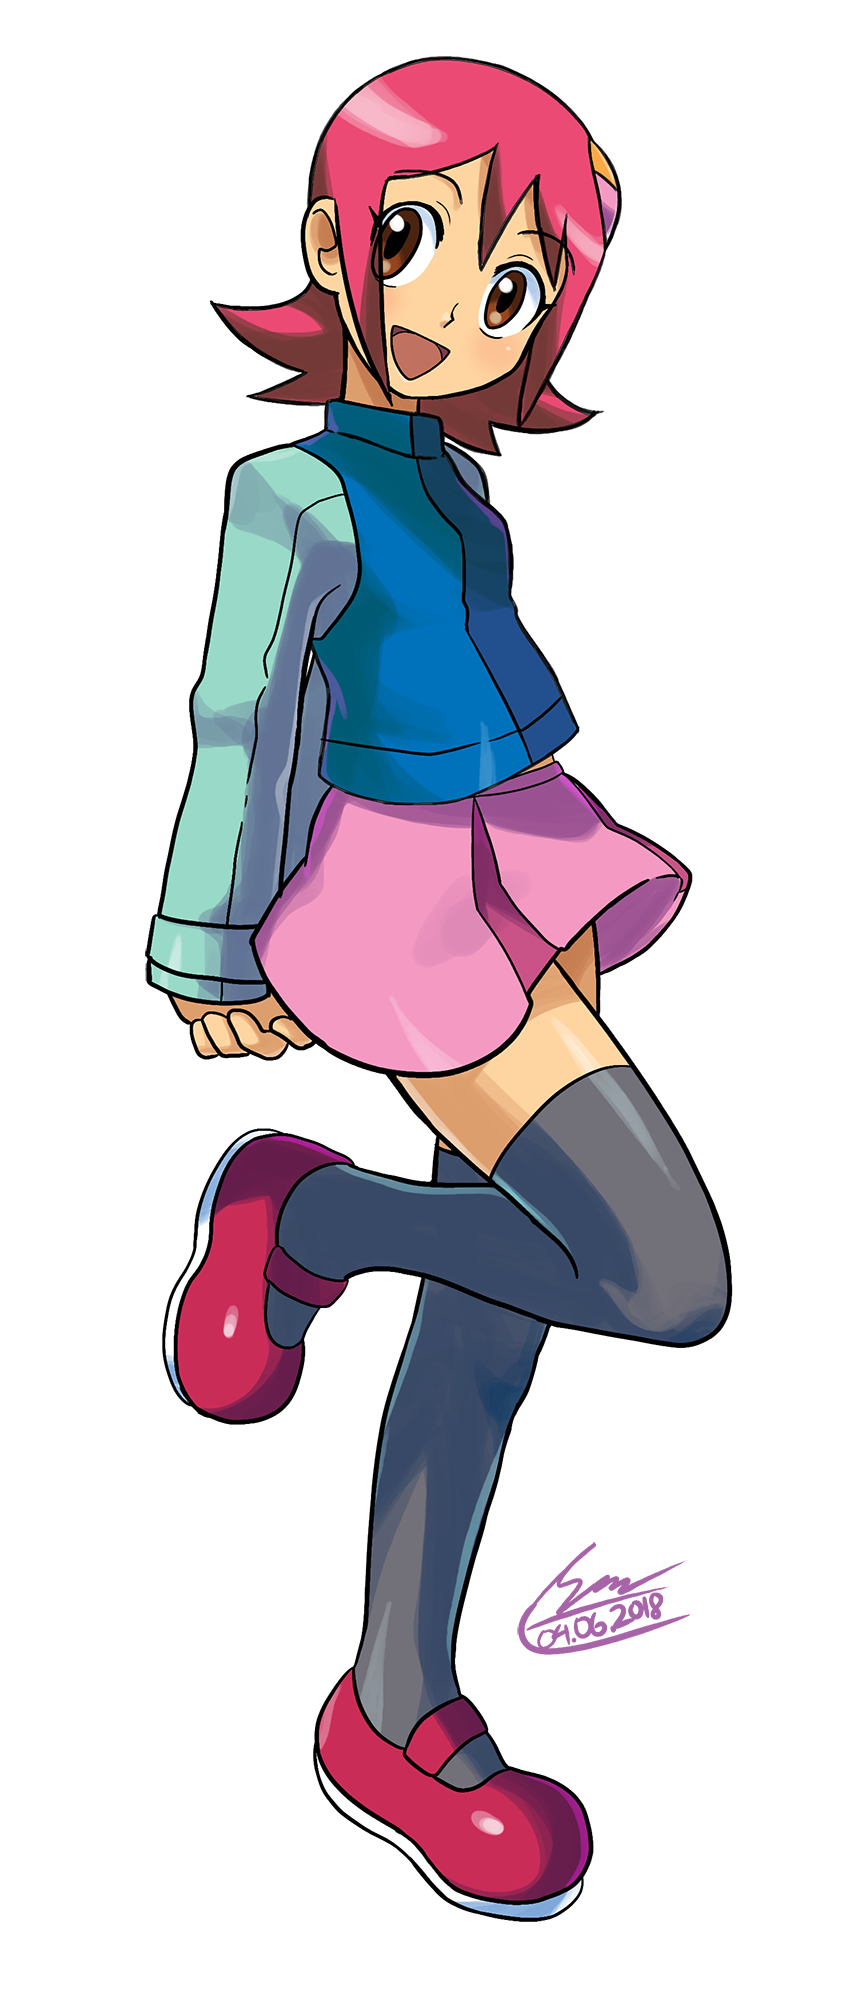 1girl arms_behind_back bangs blush breasts brown_eyes dated eyebrows_visible_through_hair full_body happy head_tilt highres long_sleeves looking_at_viewer miniskirt official_style one_leg_raised open_mouth pink_skirt purple_hair rockman rockman_exe sakurai_meiru shoes short_hair shoutaro_saito sidelocks signature simple_background skirt small_breasts smile solo standing thigh-highs white_background zettai_ryouiki